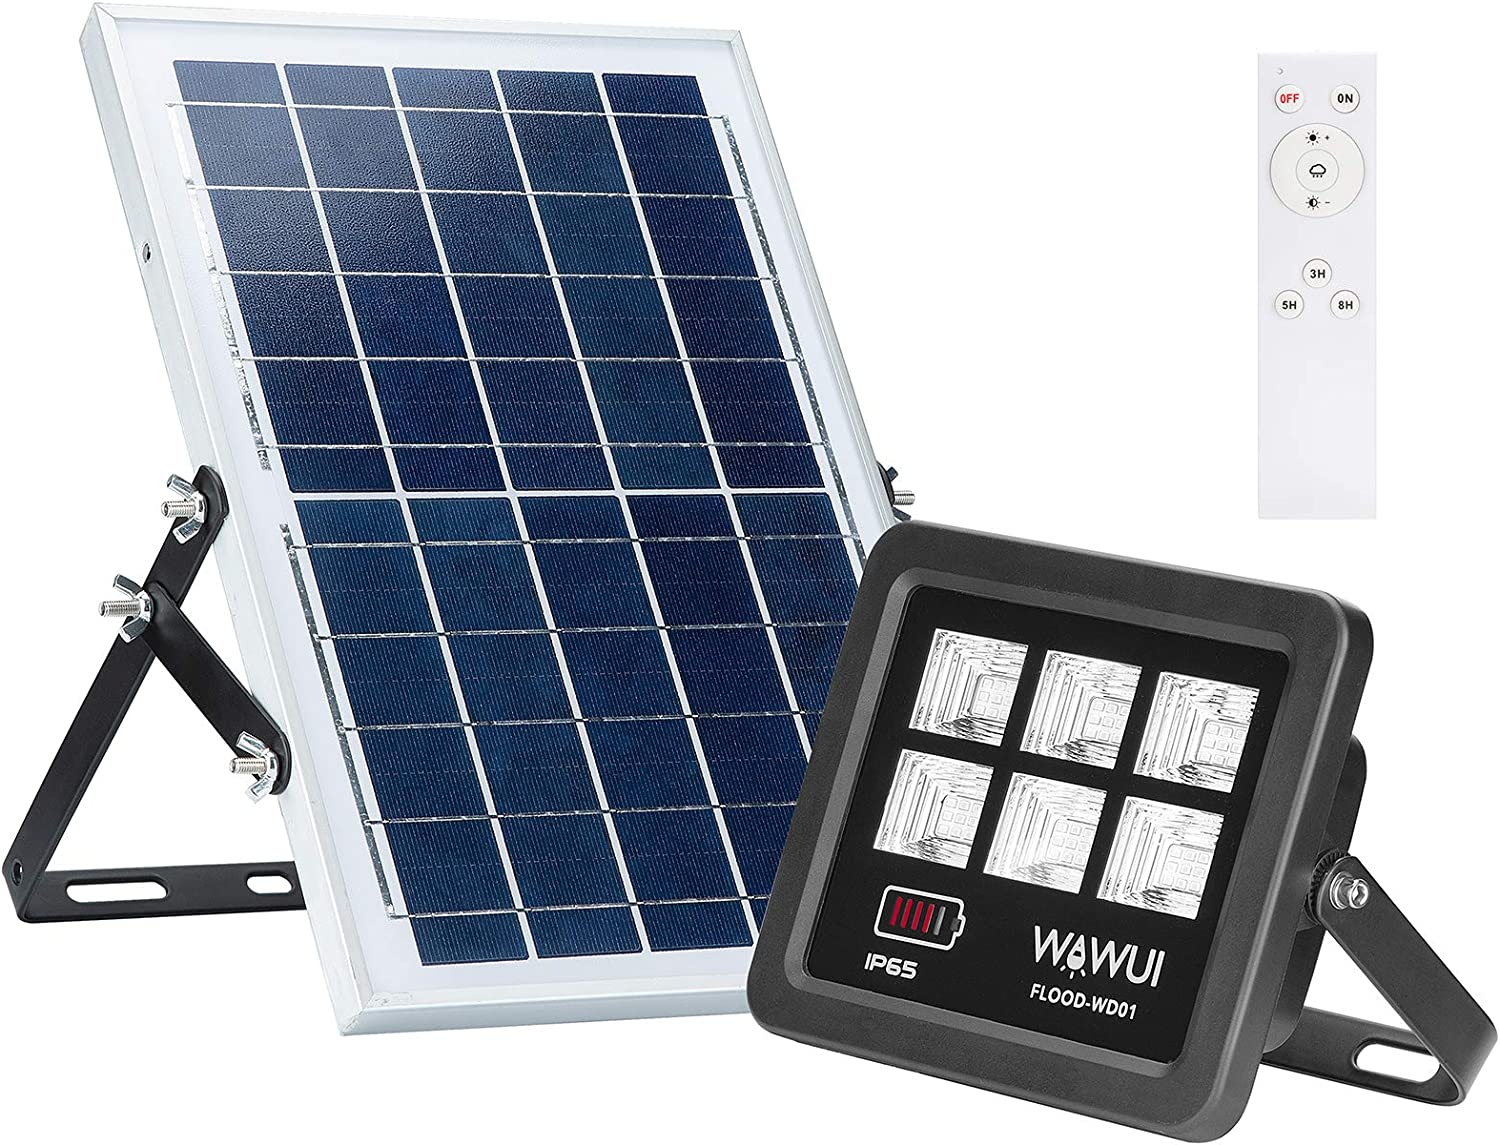 WAWUI LED Solar Flood Lights Outdoor - Dusk to Dawn, IP65 Waterproof, Remote Control, 80W, 72LEDs 800 LM 6500K, Solar Security Flood Lights for Garden, Garage, Pathway, Pool, Deck, Yard, Street